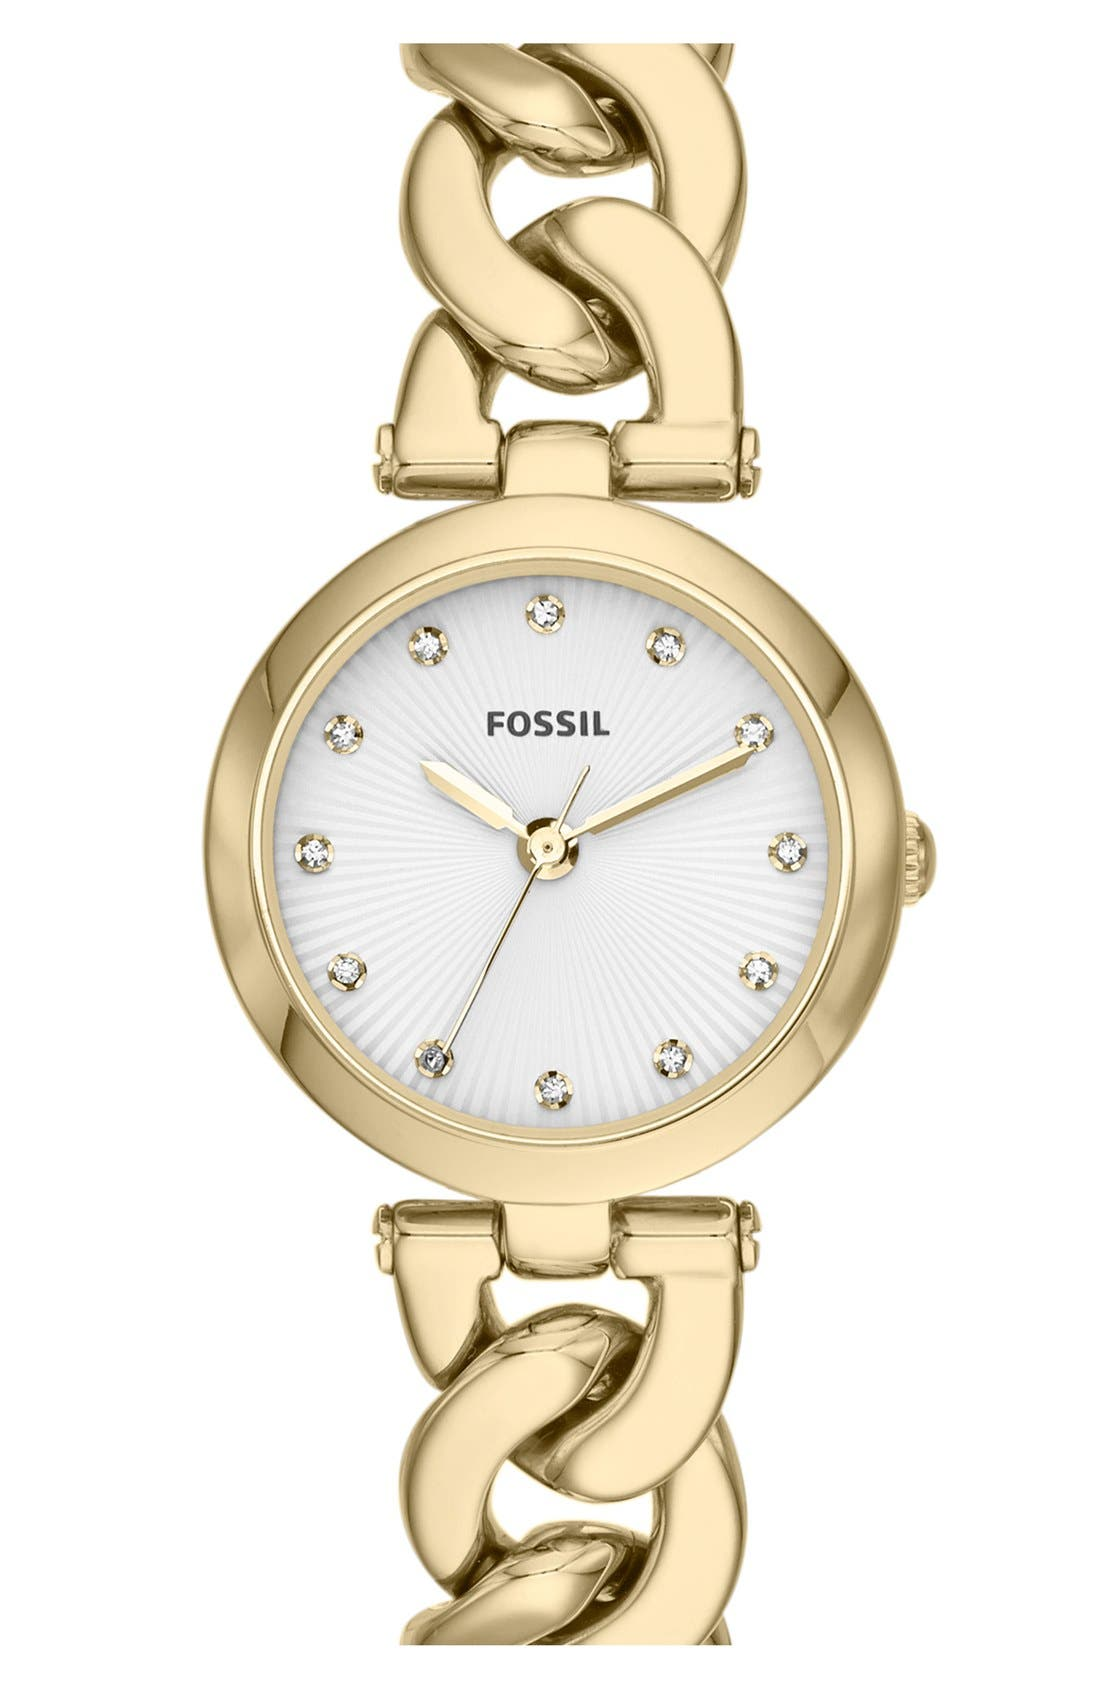 Main Image - Fossil 'Olive' Chain Link Bracelet Watch, 28mm